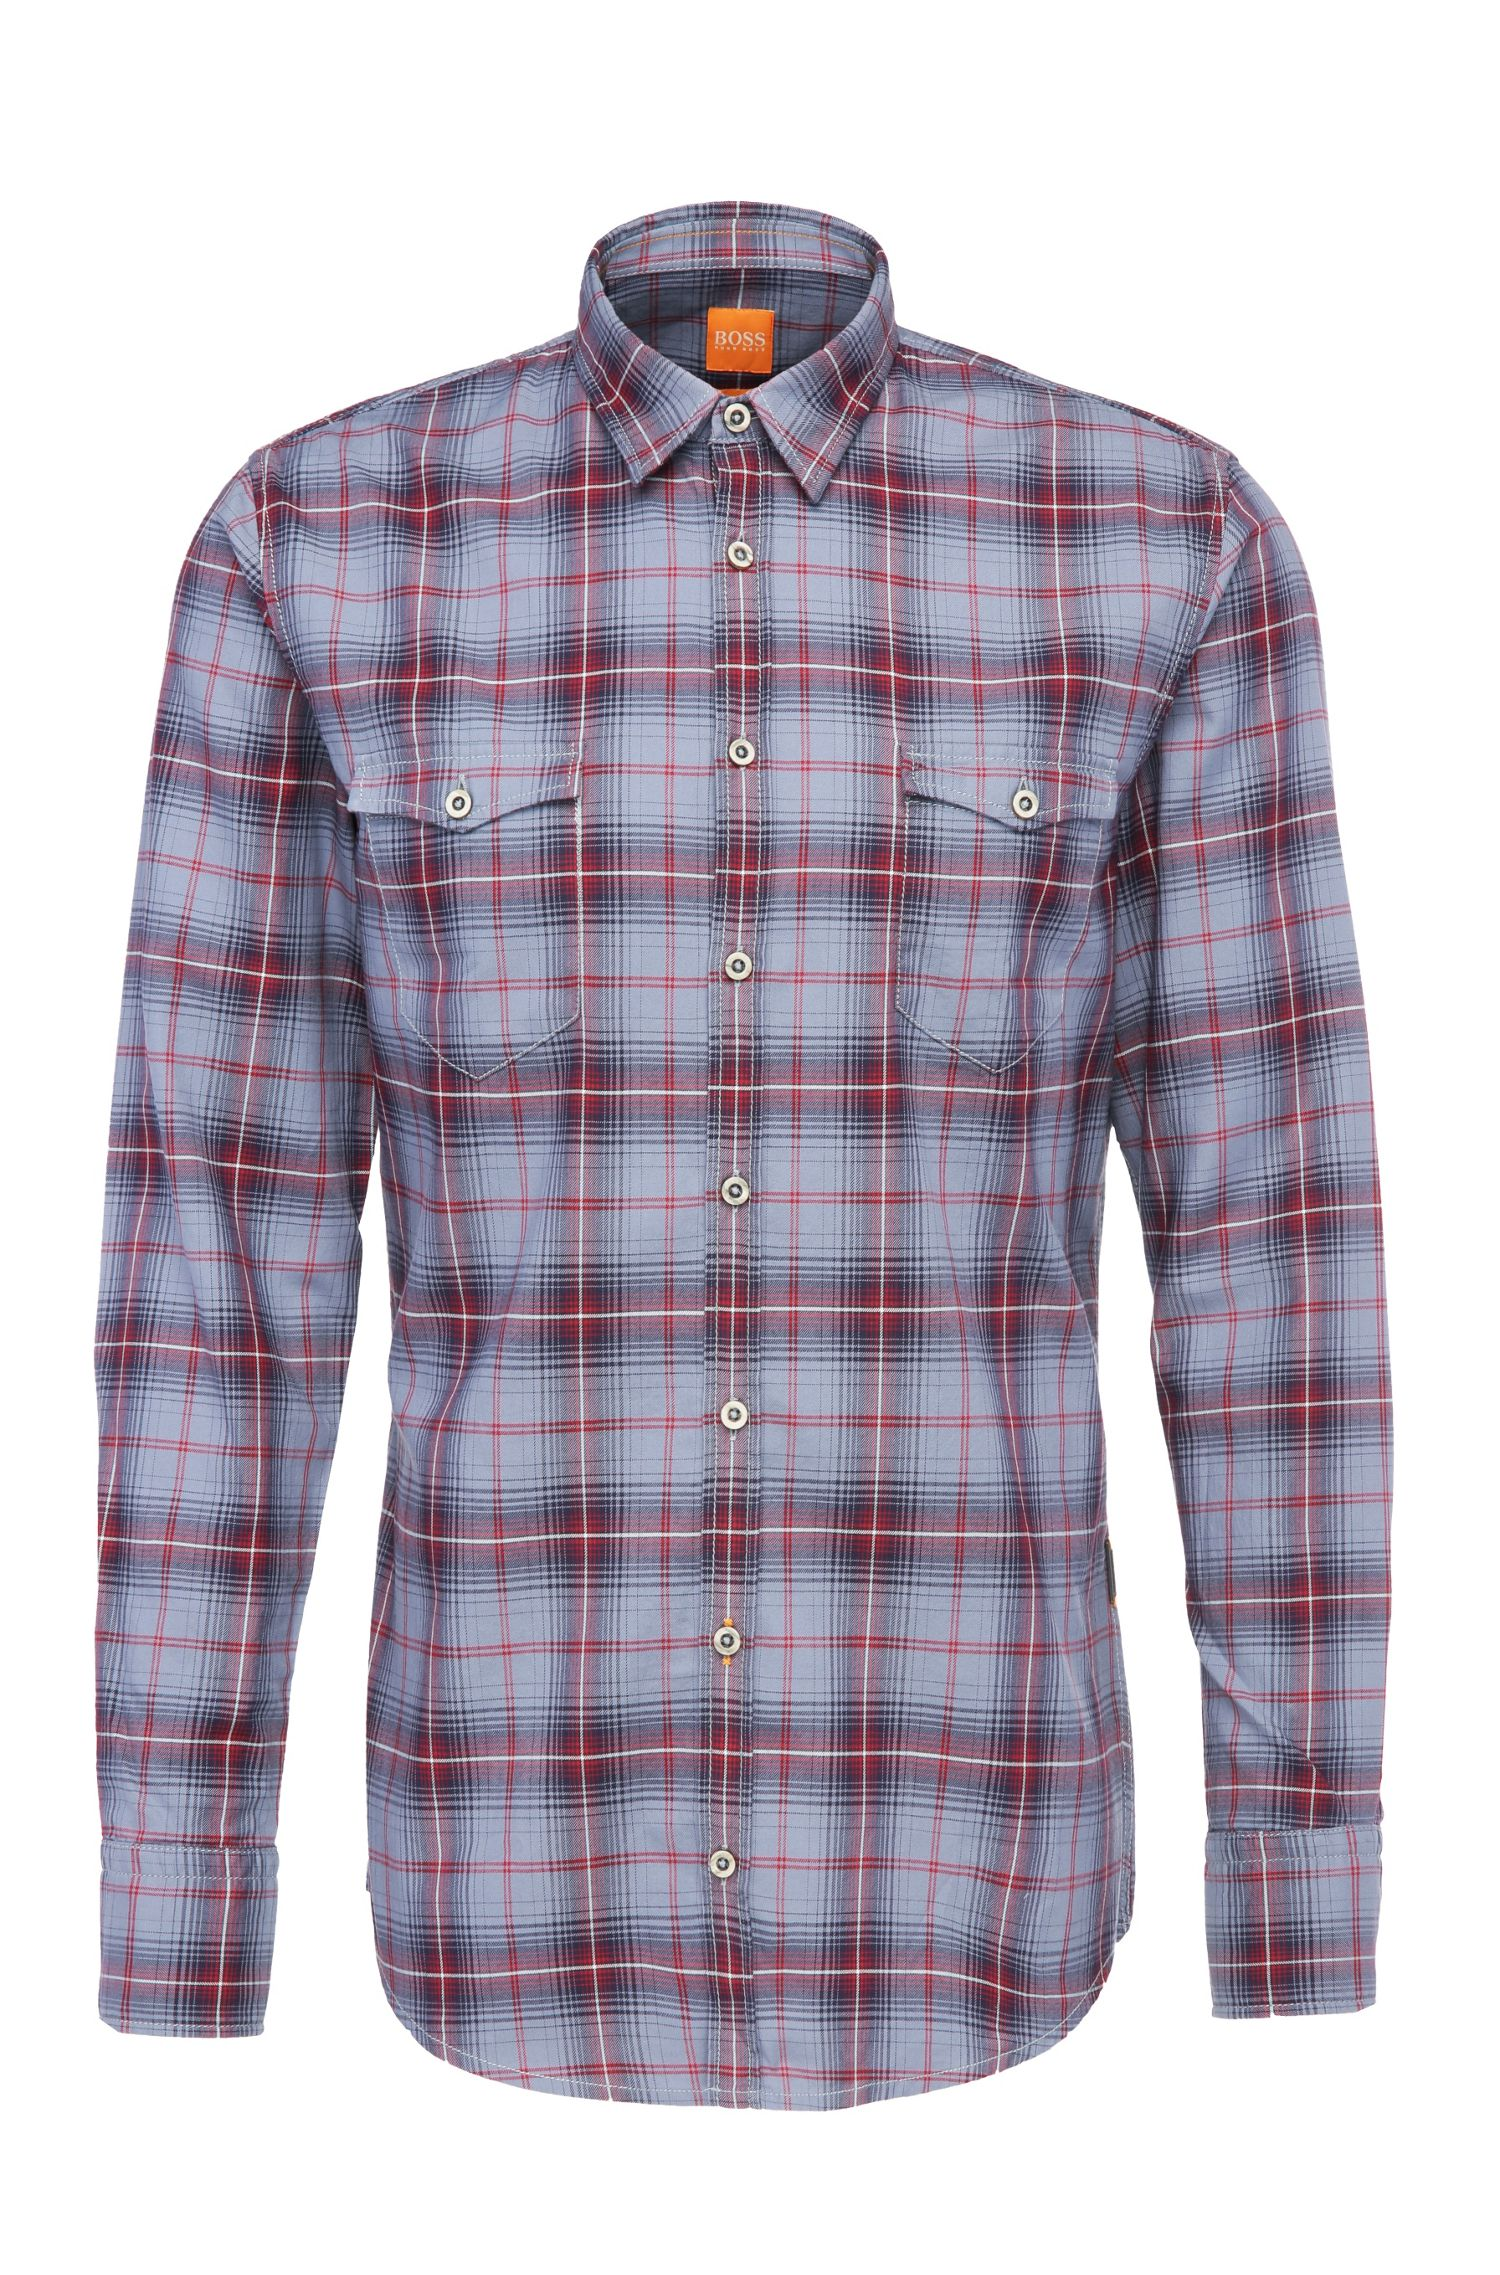 'EdoslimE' | Slim Fit, Cotton Plaid Button Down Shirt